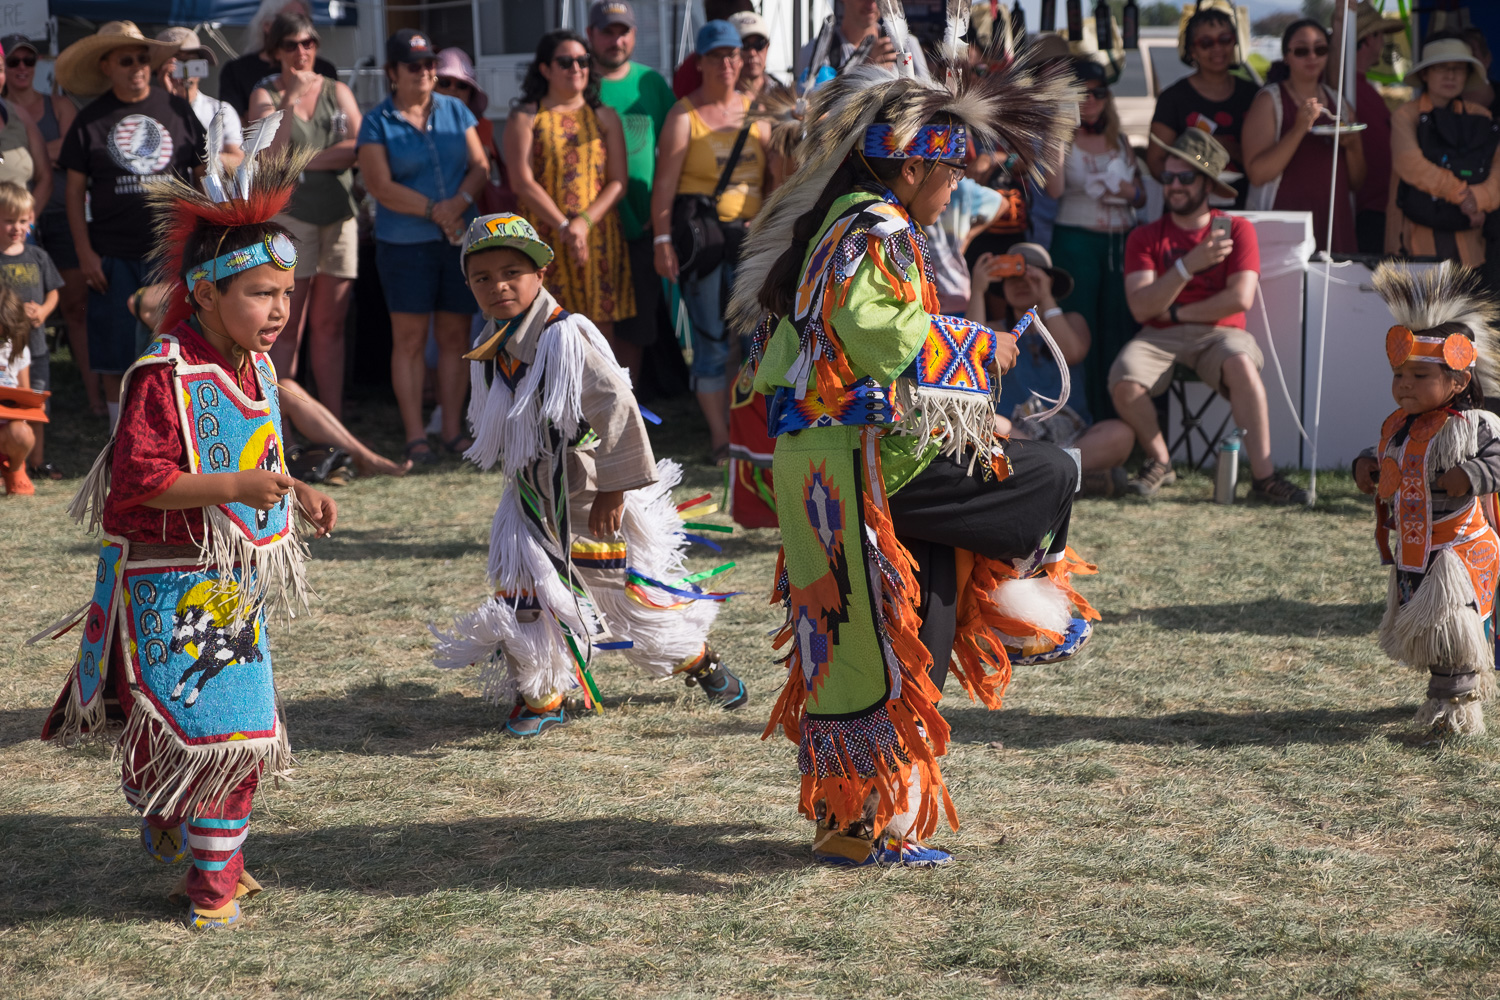 Tribal dancing. Oregon Solarfest (Image: Paola Thomas / Seattle Refined)